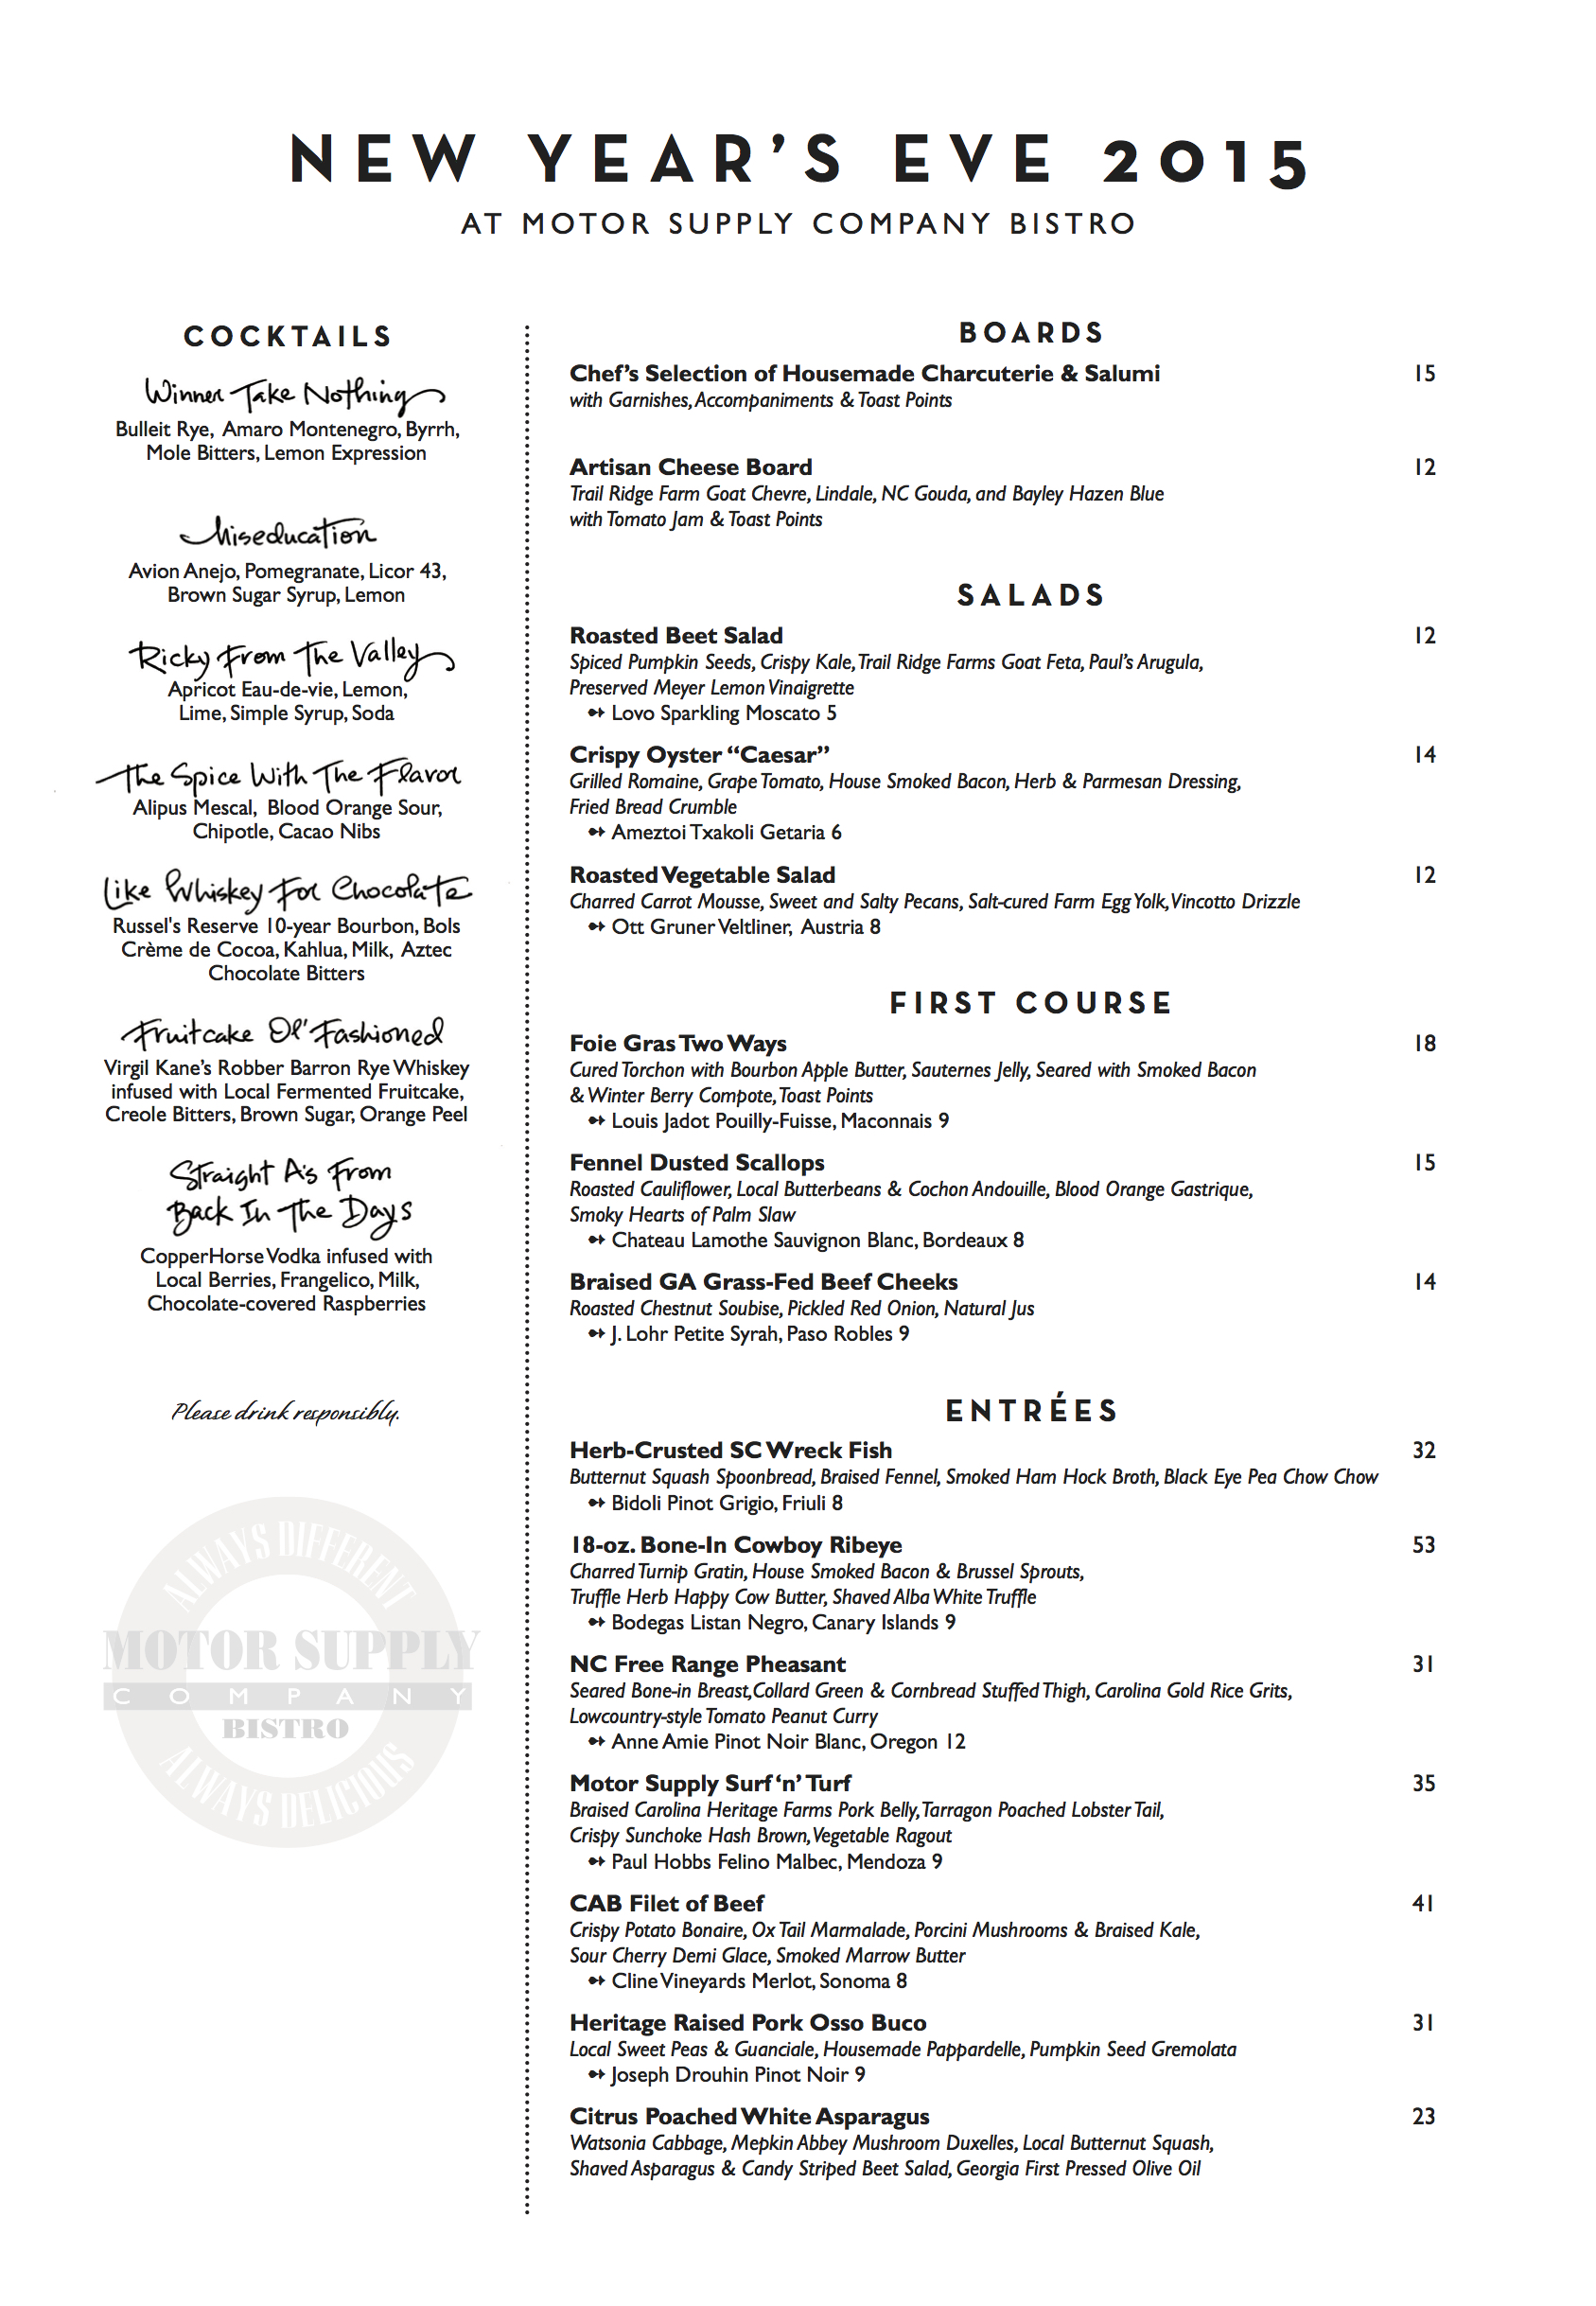 New Year's Eve 2015 menu at Motor Supply Co. Bistro